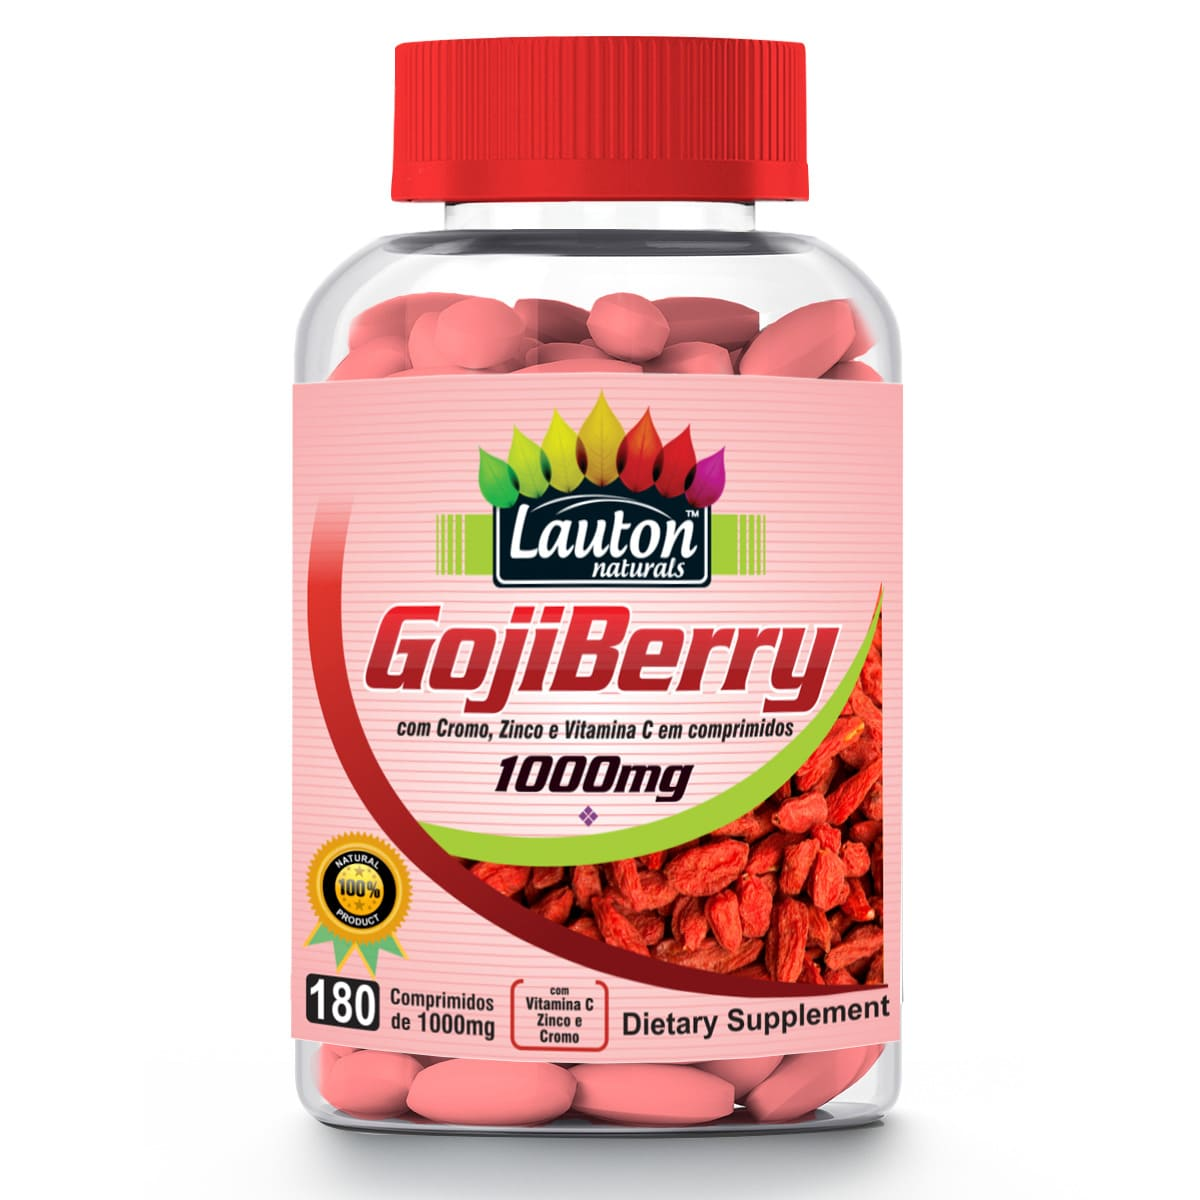 Goji Berry Lauton Nutrition 180 Comprimidos 1000mg